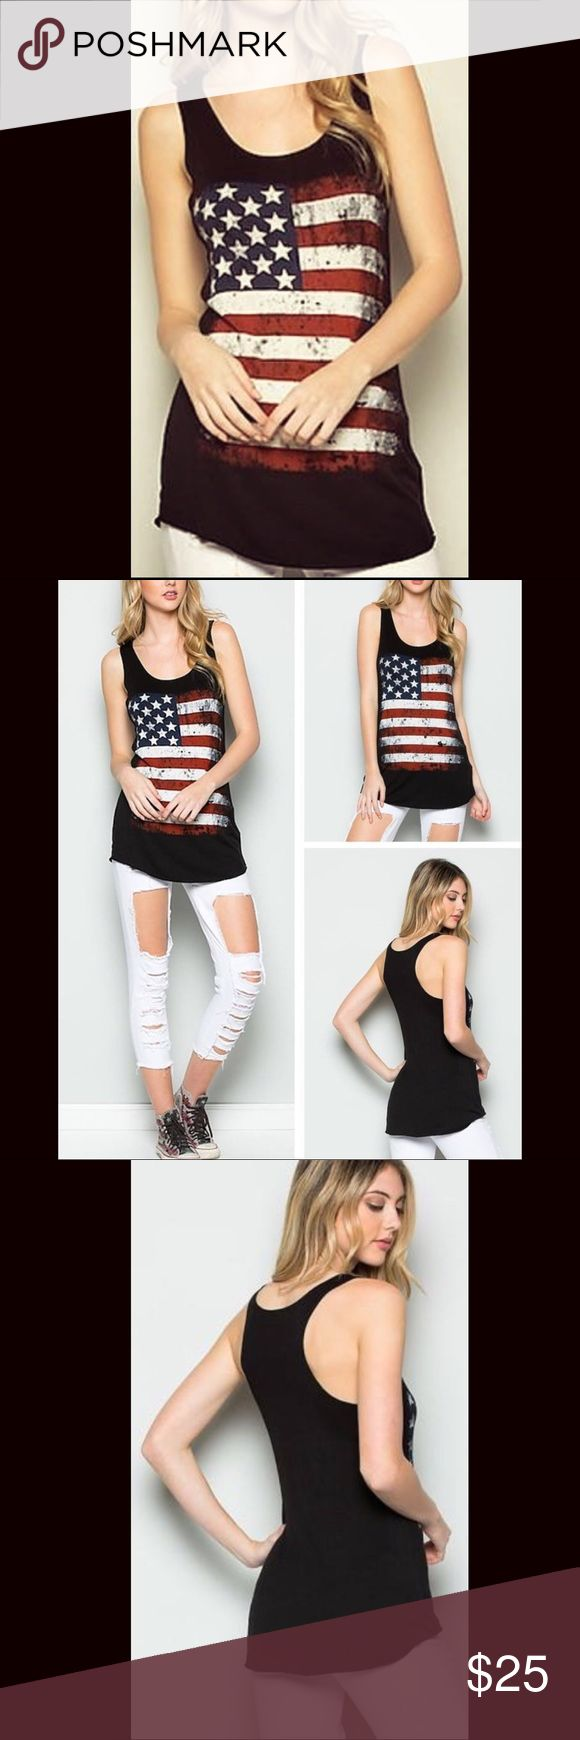 Racerback Flag Tank - Classic black racerback tank (longer length) - Distressed flag print on front  - 95% rayon / 5% spandex - Made in the USA - Machine wash cold separately Tops Tank Tops